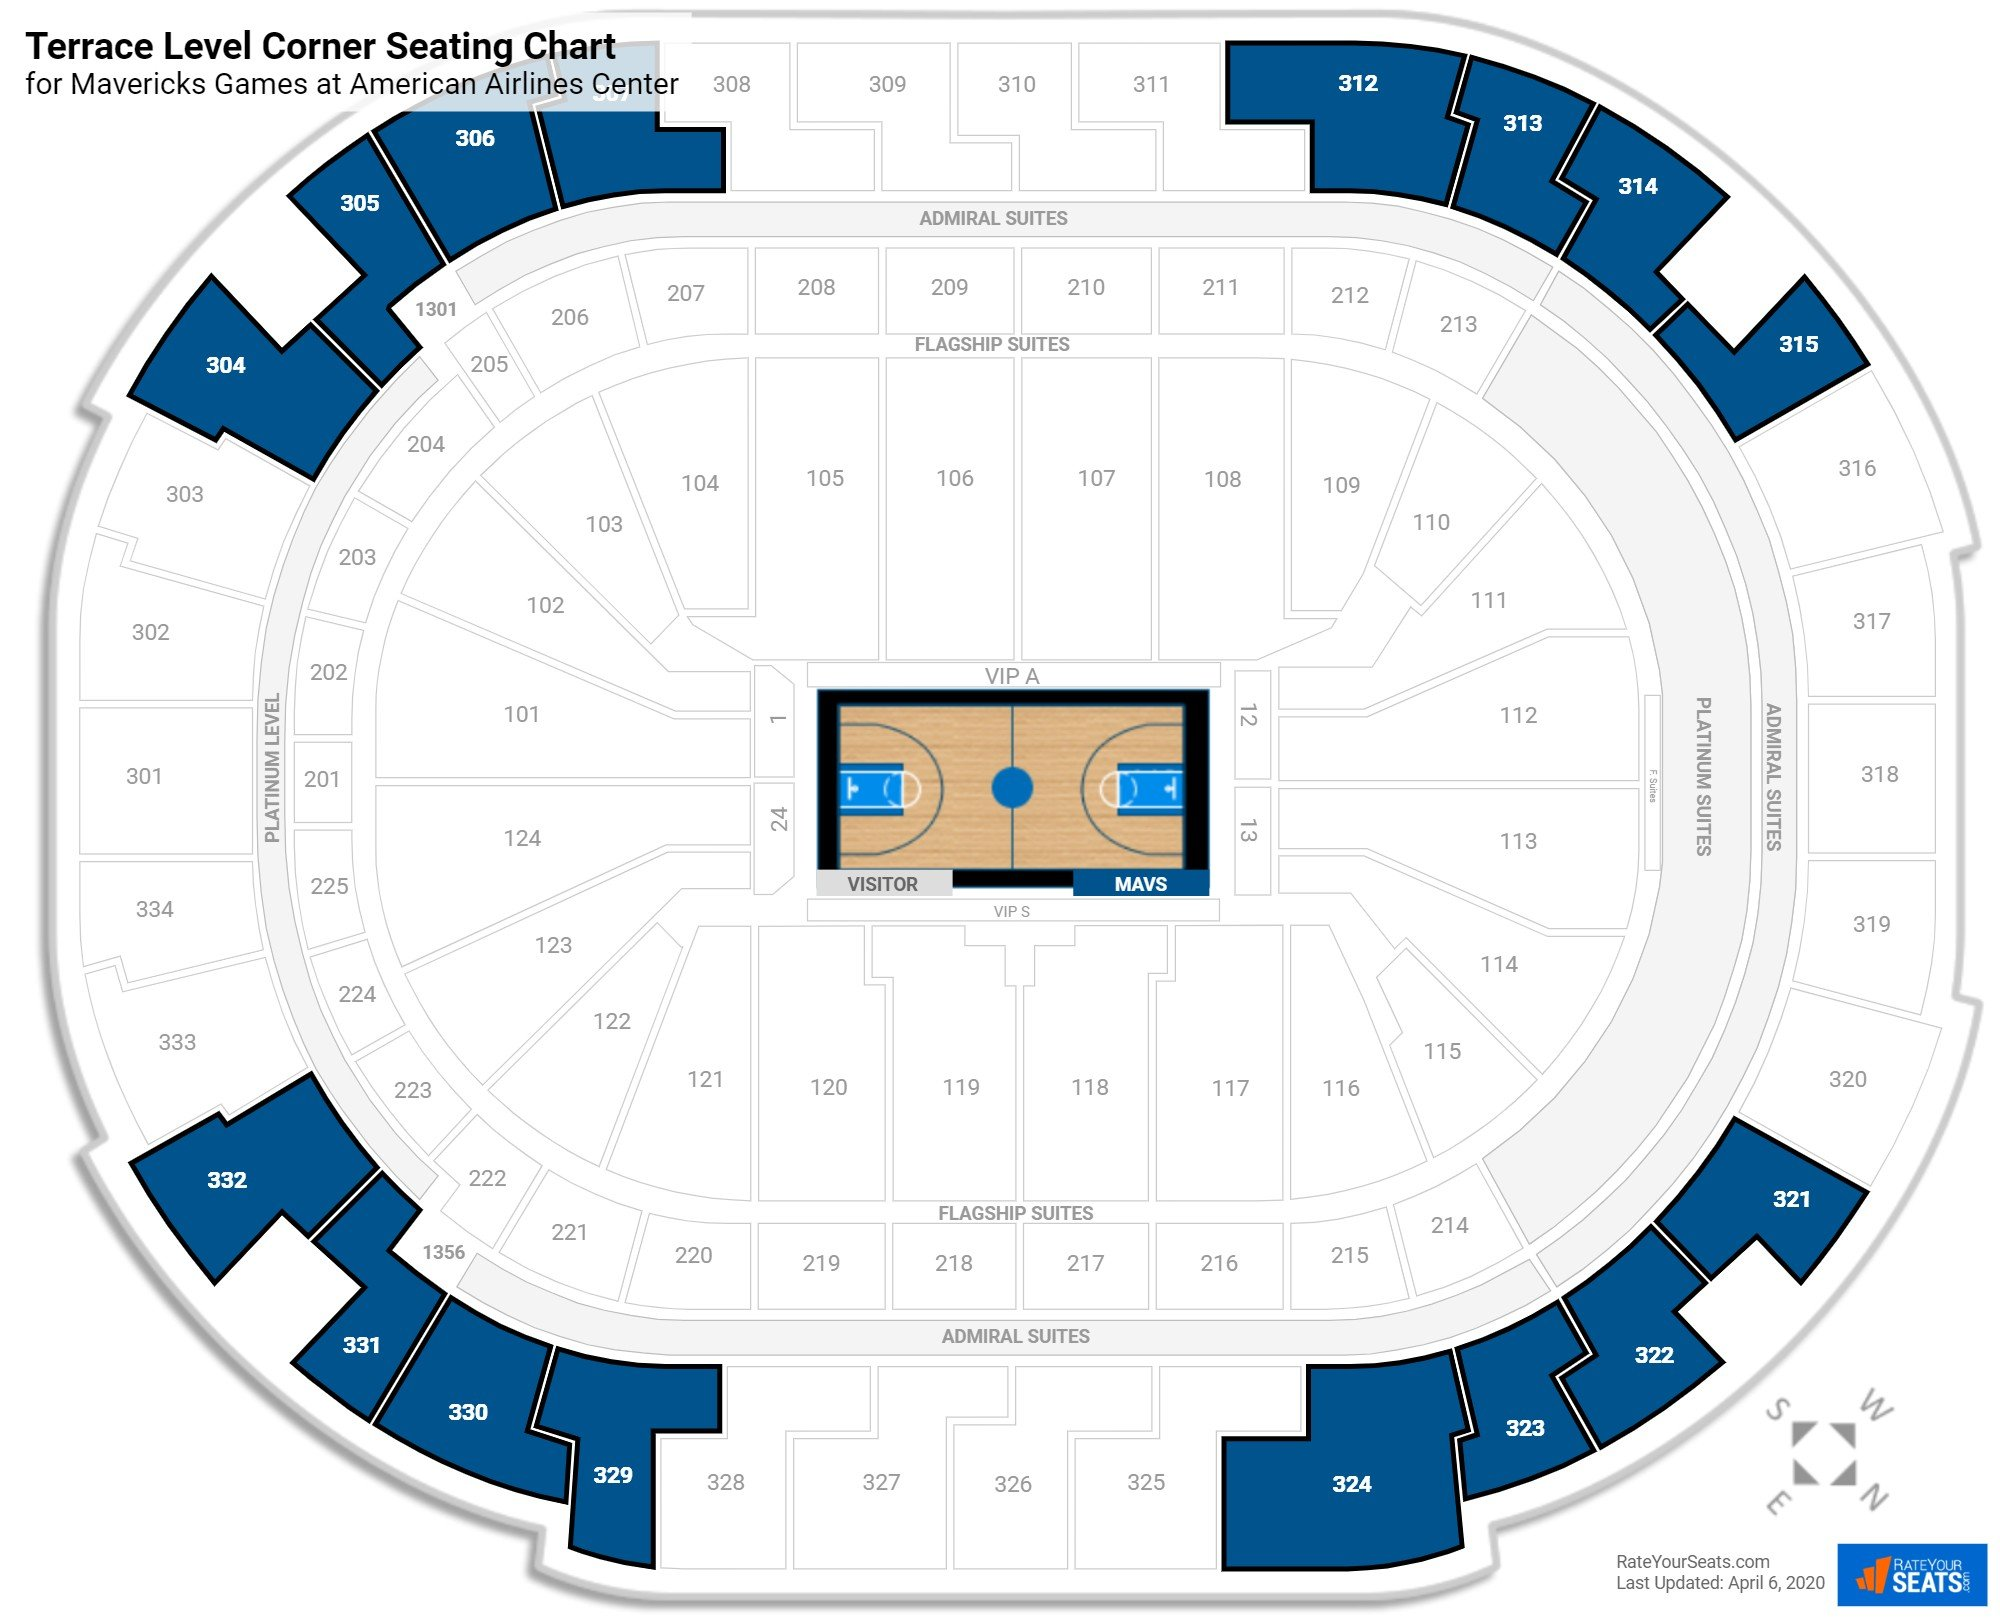 American Airlines Center Terrace Level Corner seating chart